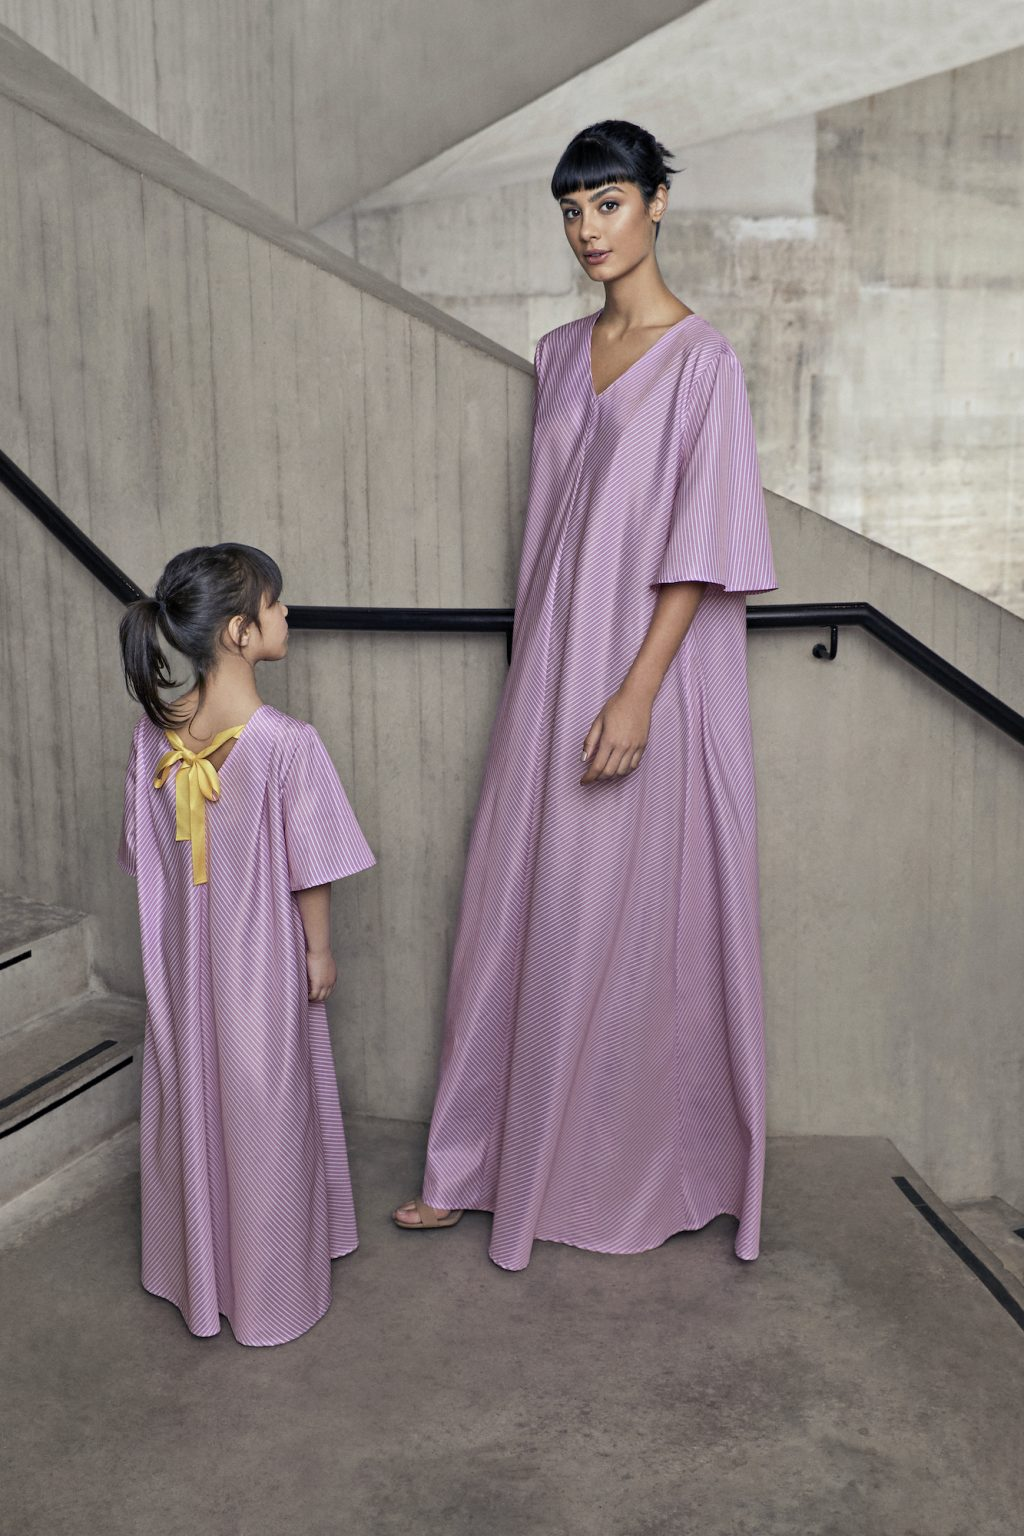 Leem 'Like Mother, Like Daughter' Ramadan 2020 collection